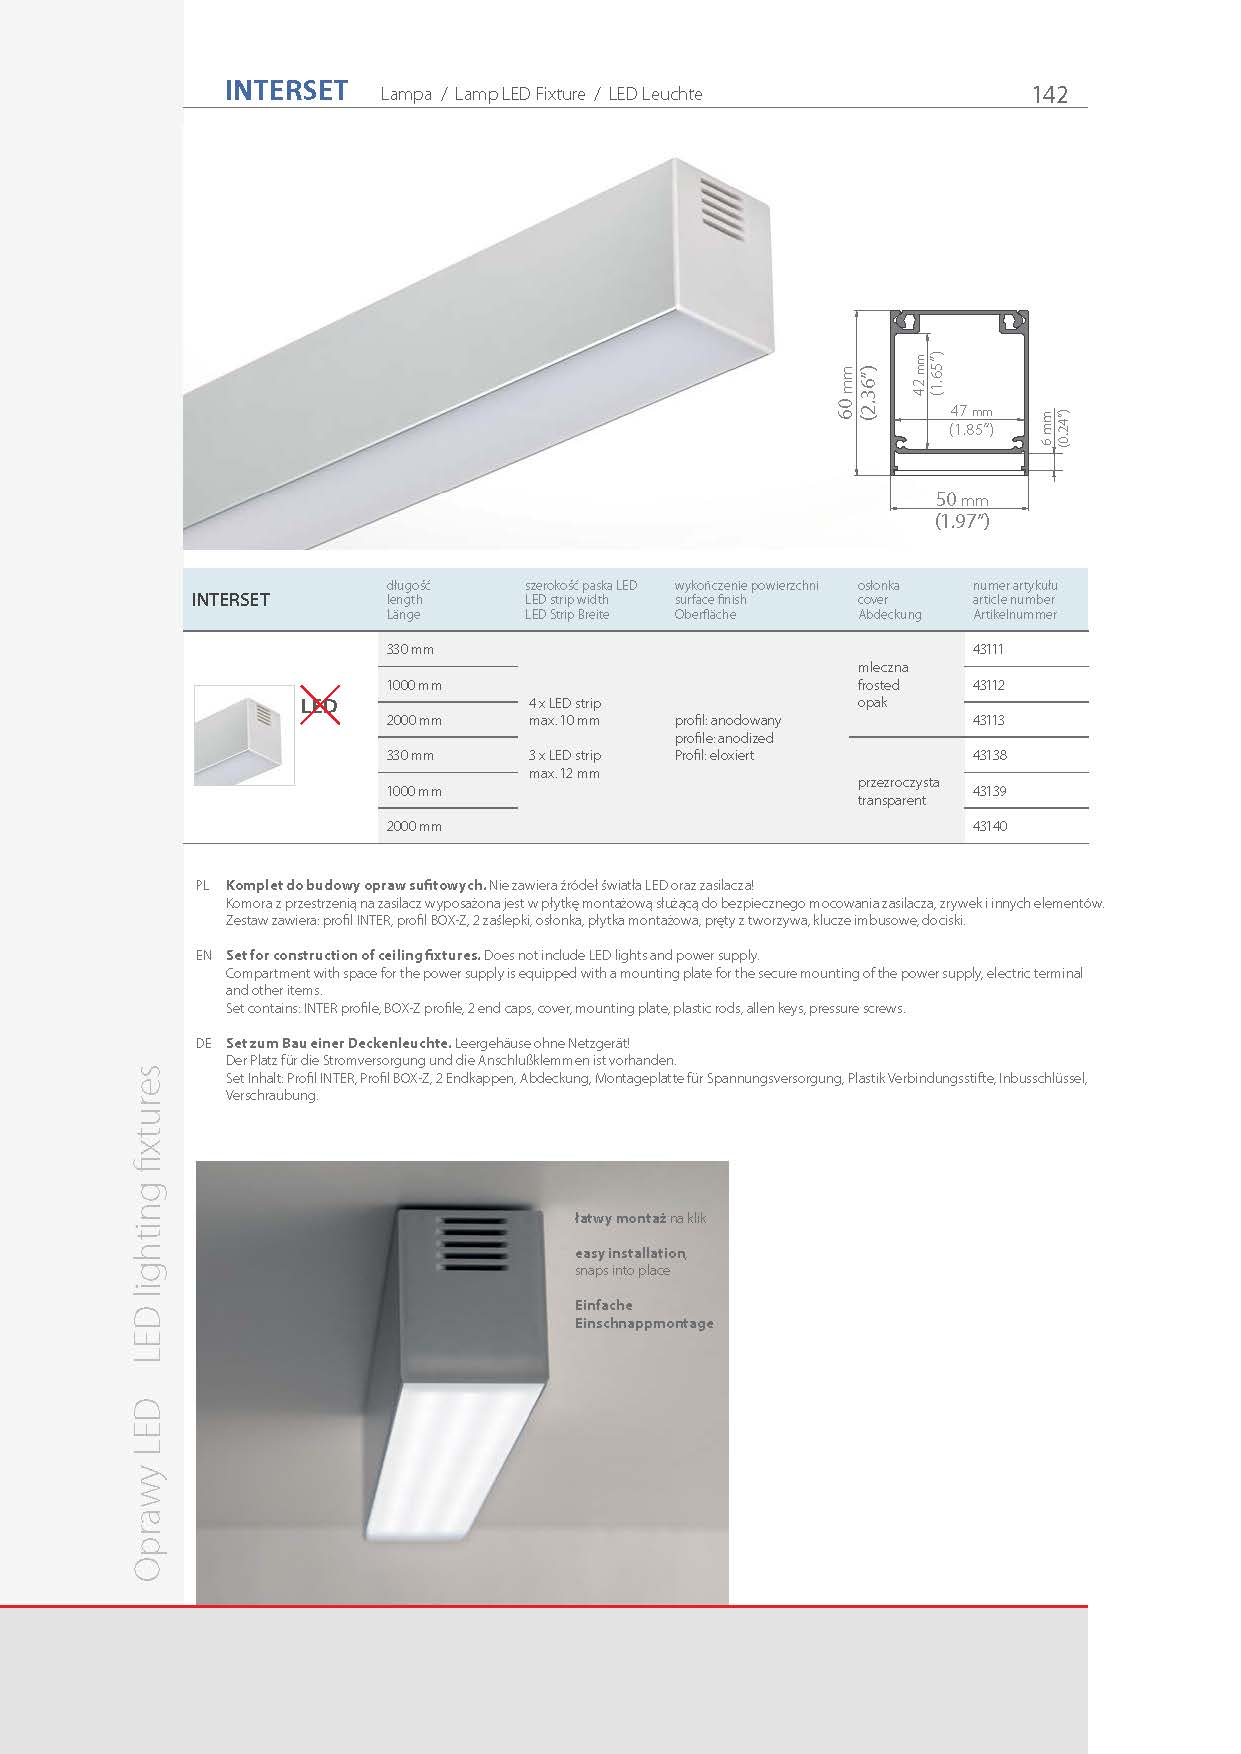 INTER, profile | stair-lighting.com, 18011 profile, INTER klus profile, INTER channel,